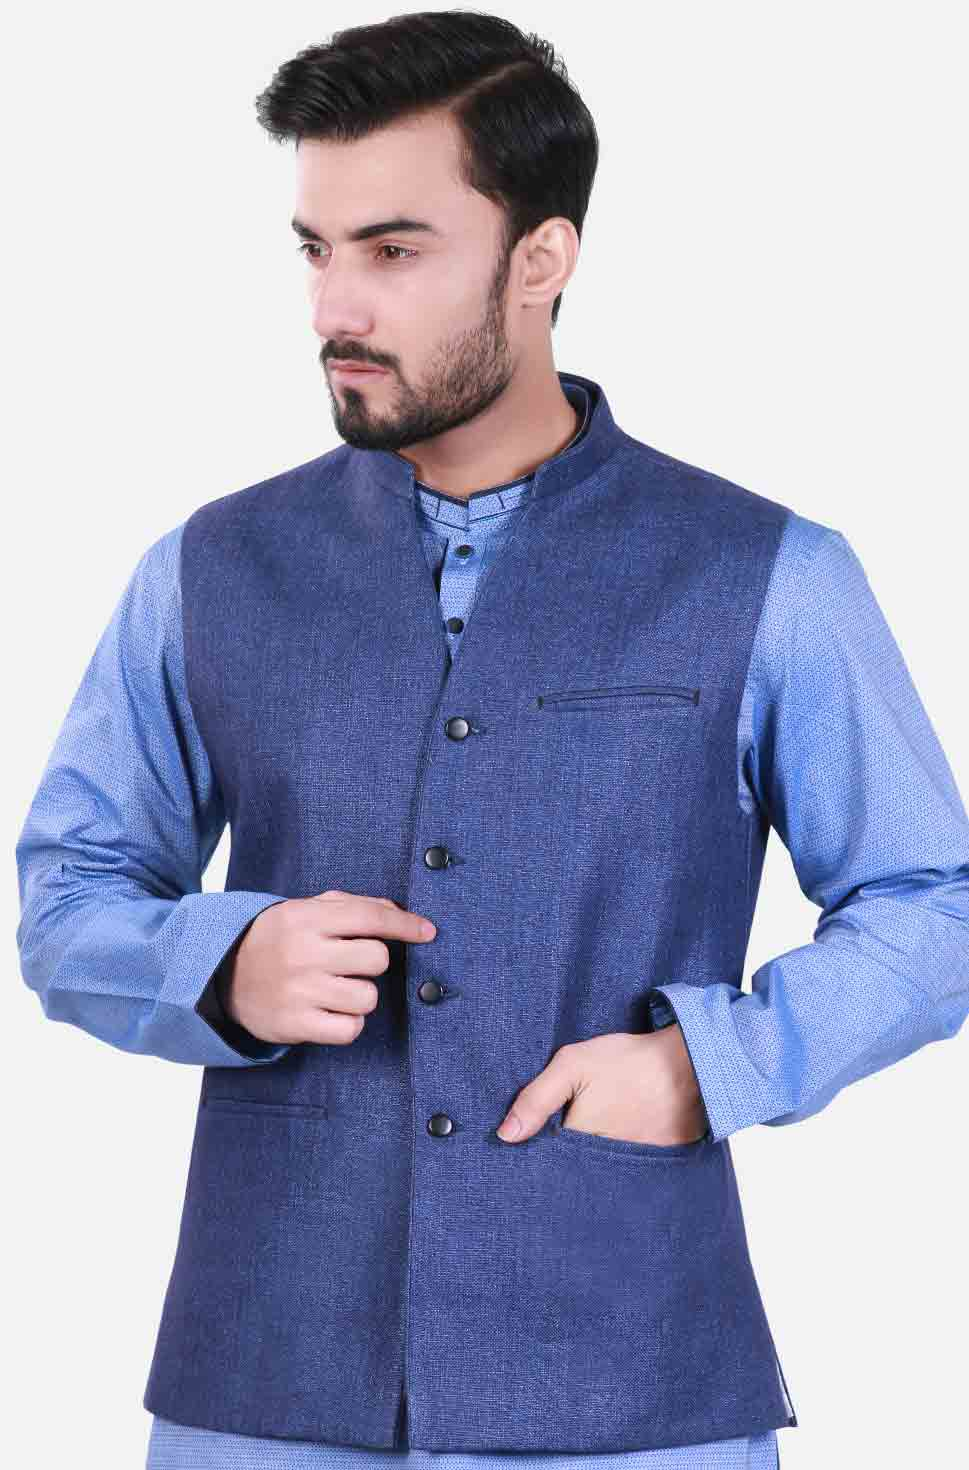 Blue waistcoat designs 2017 with sky blue kurta for boys in Pakistan